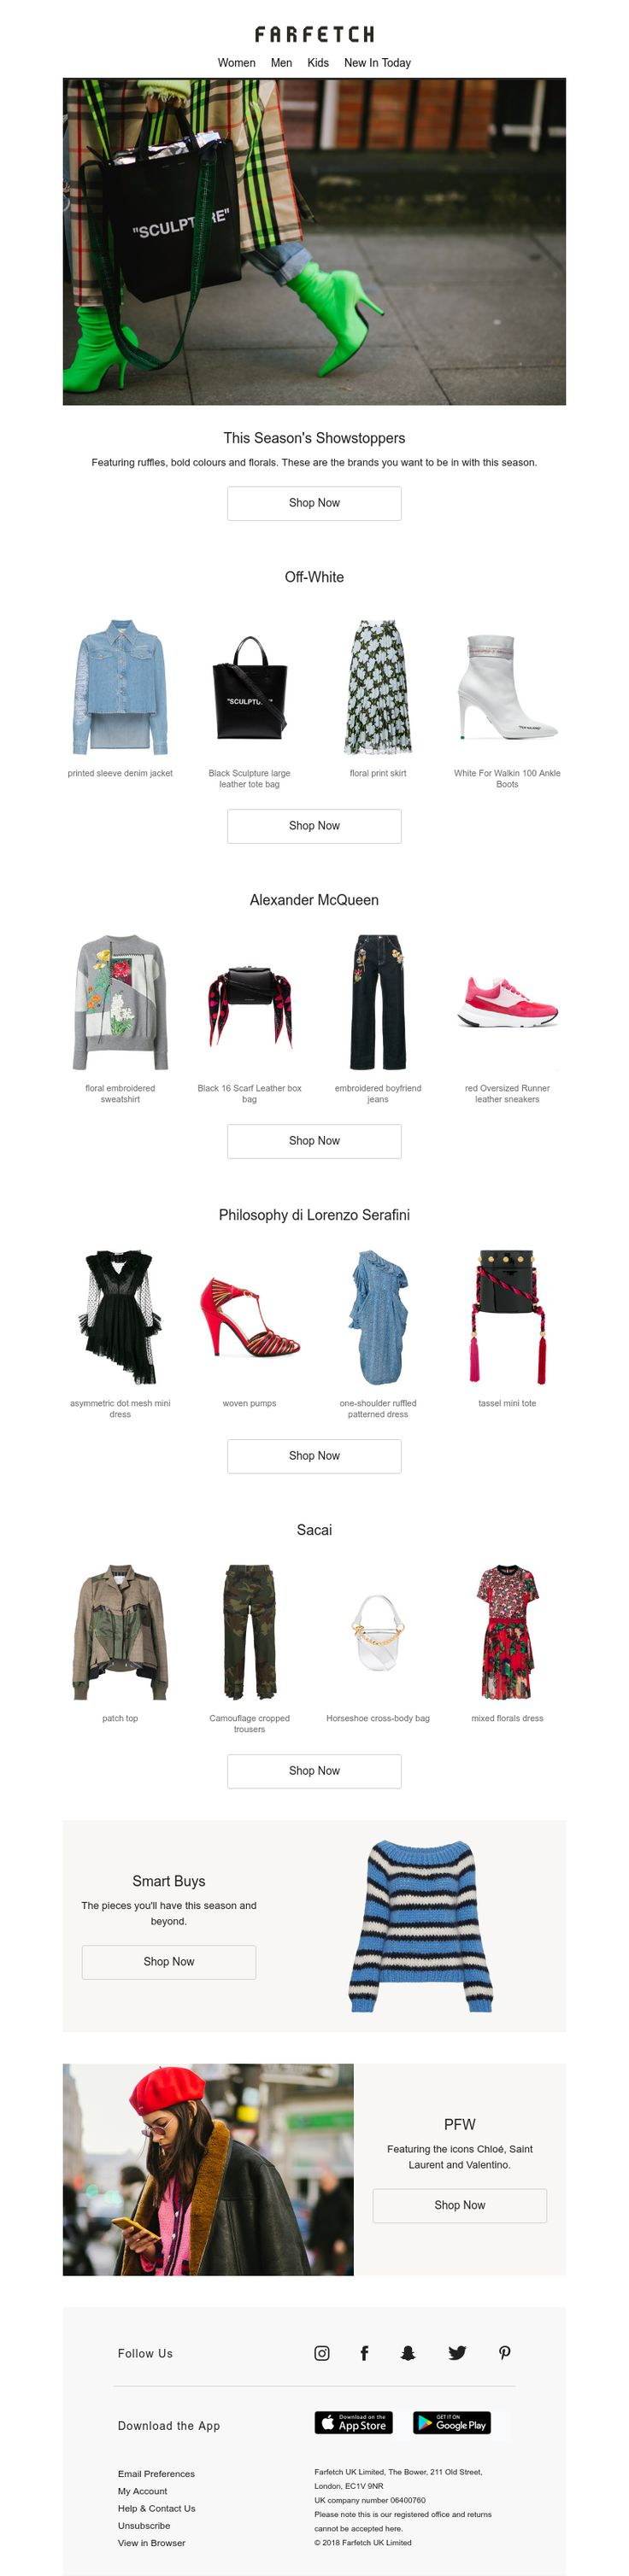 This is the Completely New Image Of Trending Product List